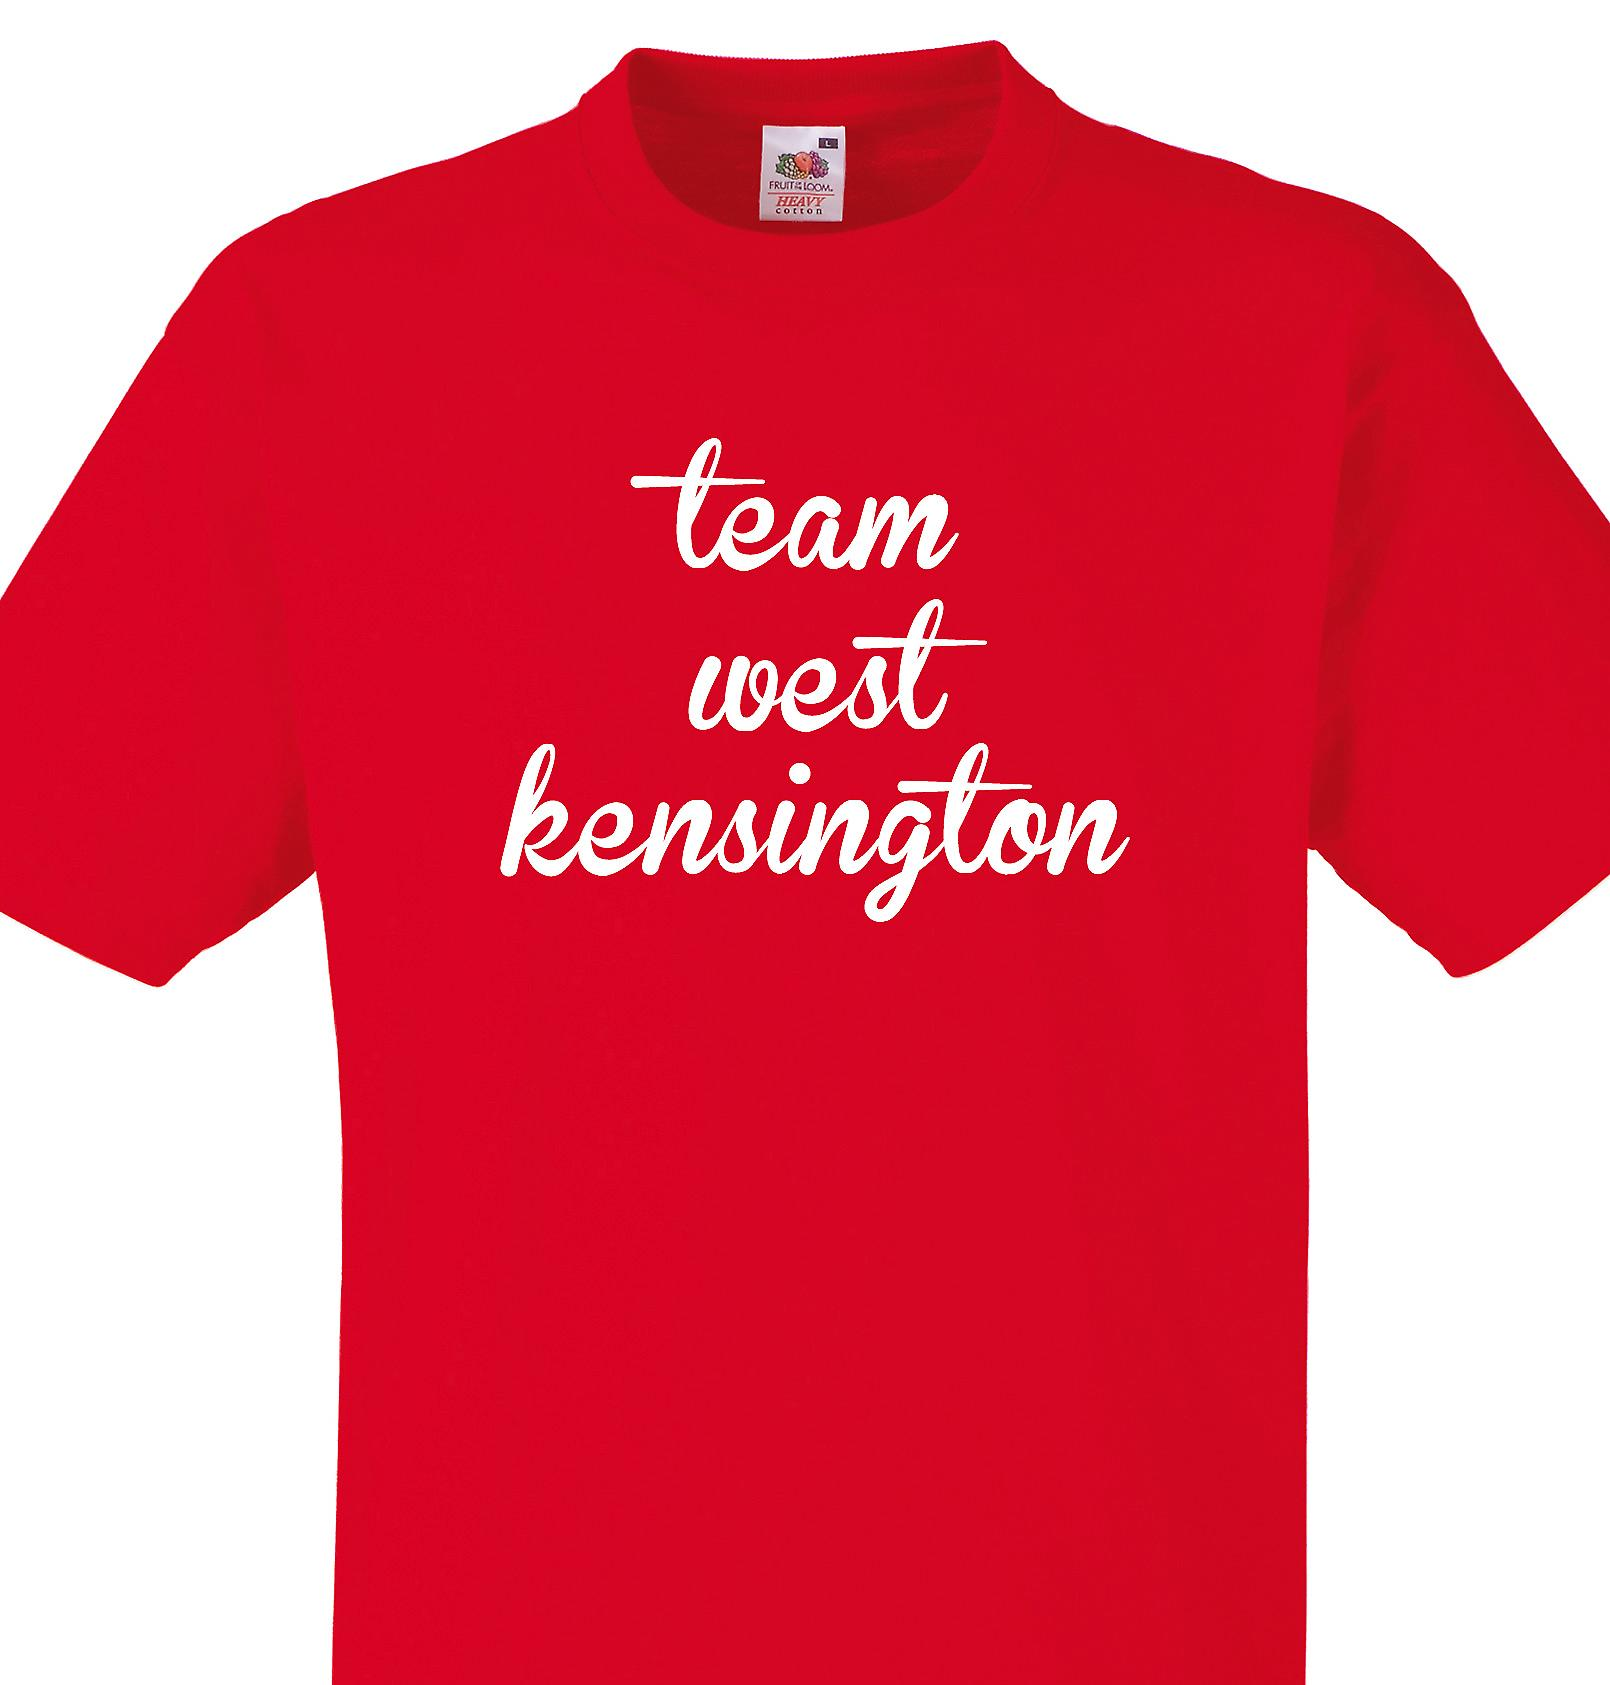 Team West kensington Red T shirt